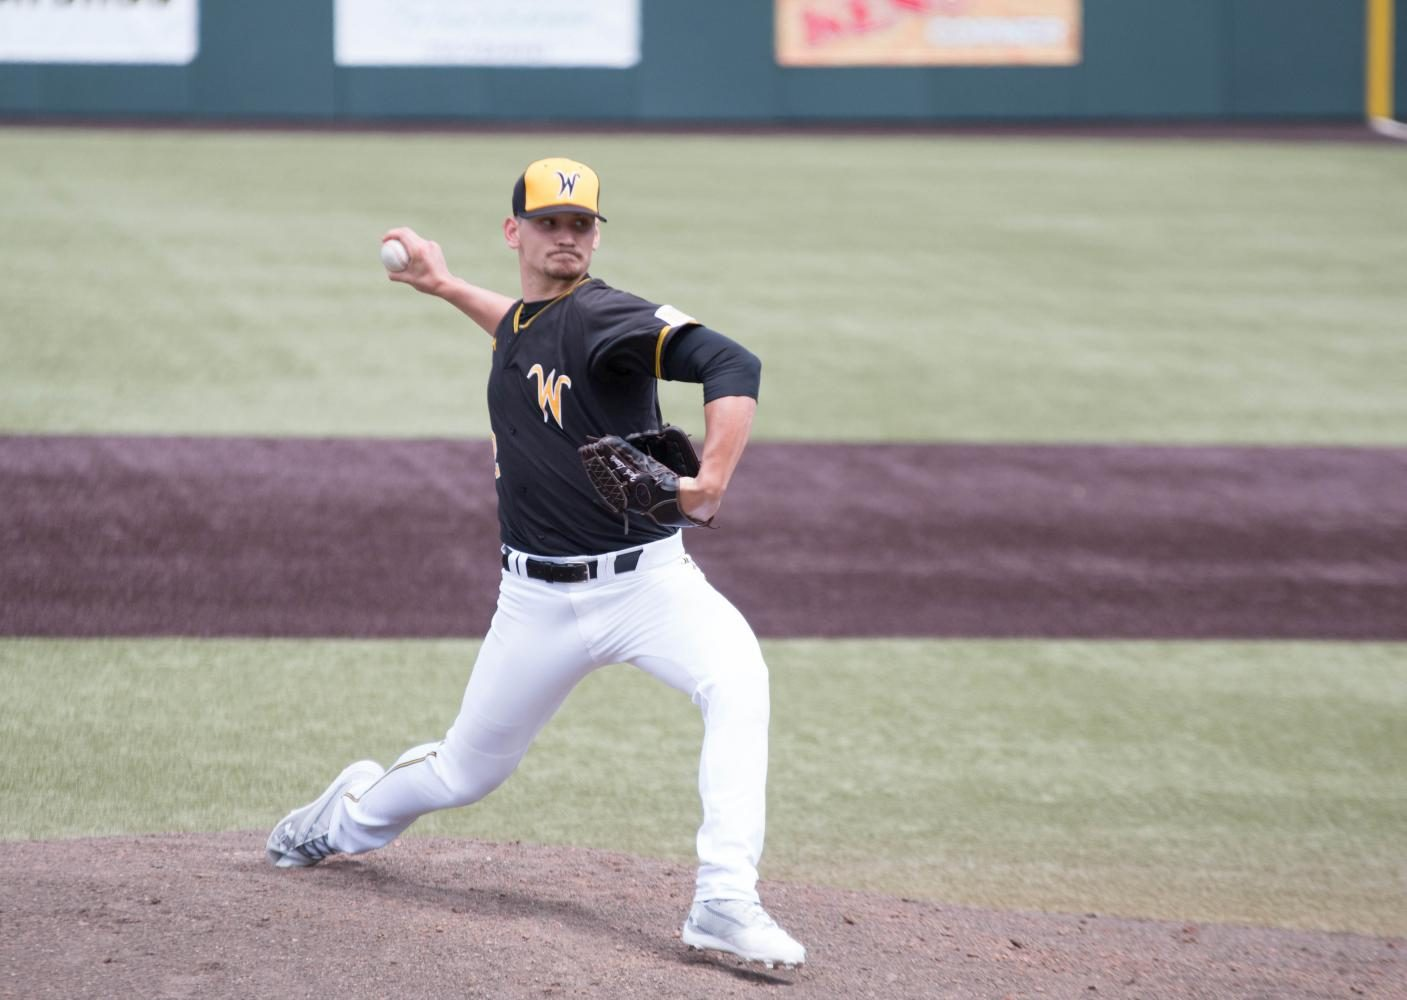 Wichita+State+pitcher+Zach+Lewis+pitches+during+the+first+game+against+Illinois+State+at+Eck+Stadium+%28April+28%2C+2017%29